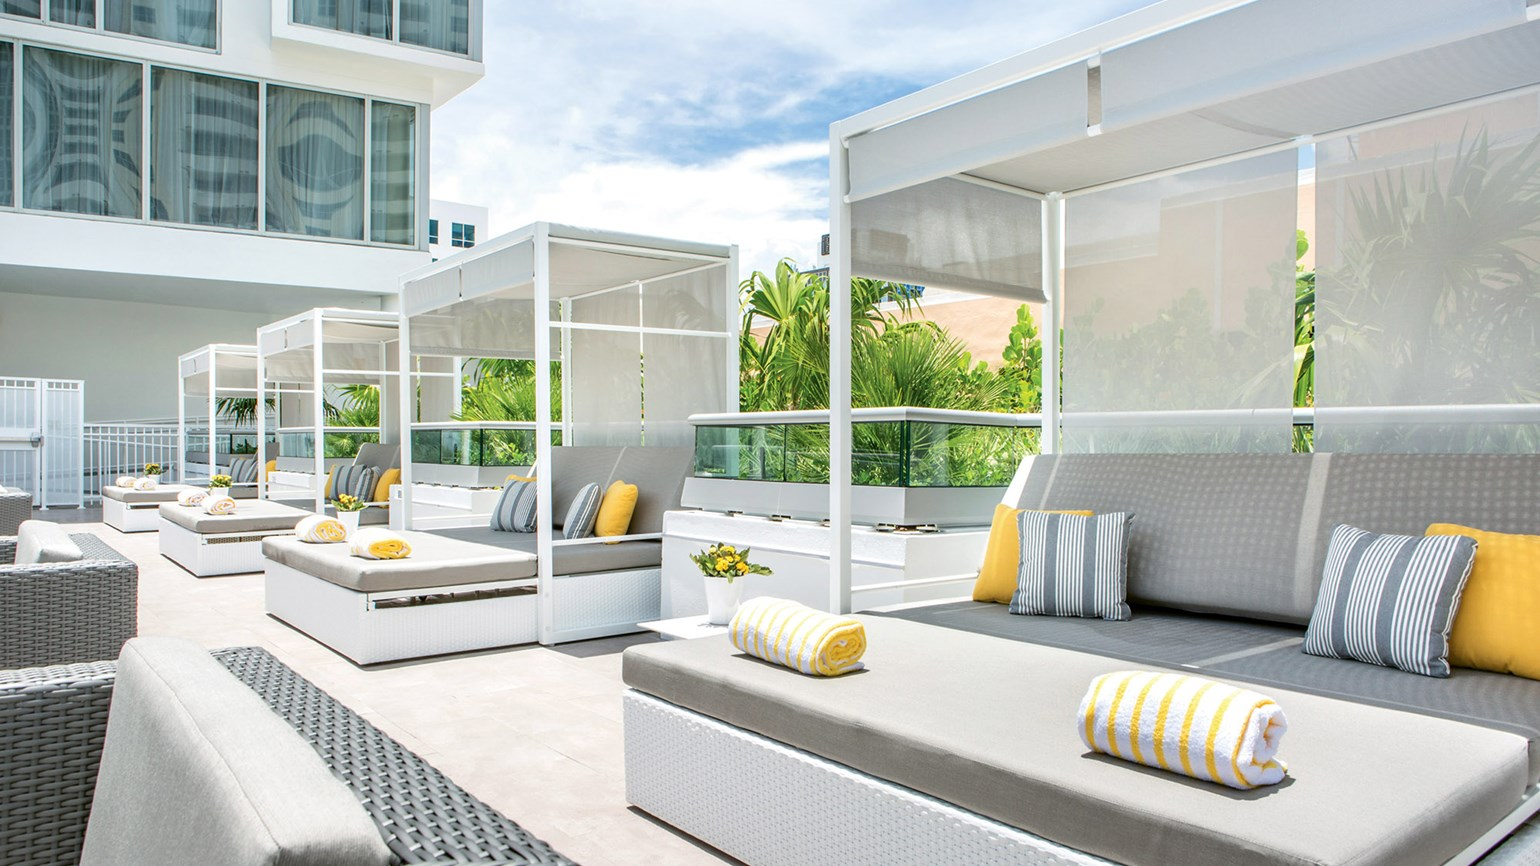 Miami minimalism at Hyatt Centric South Beach